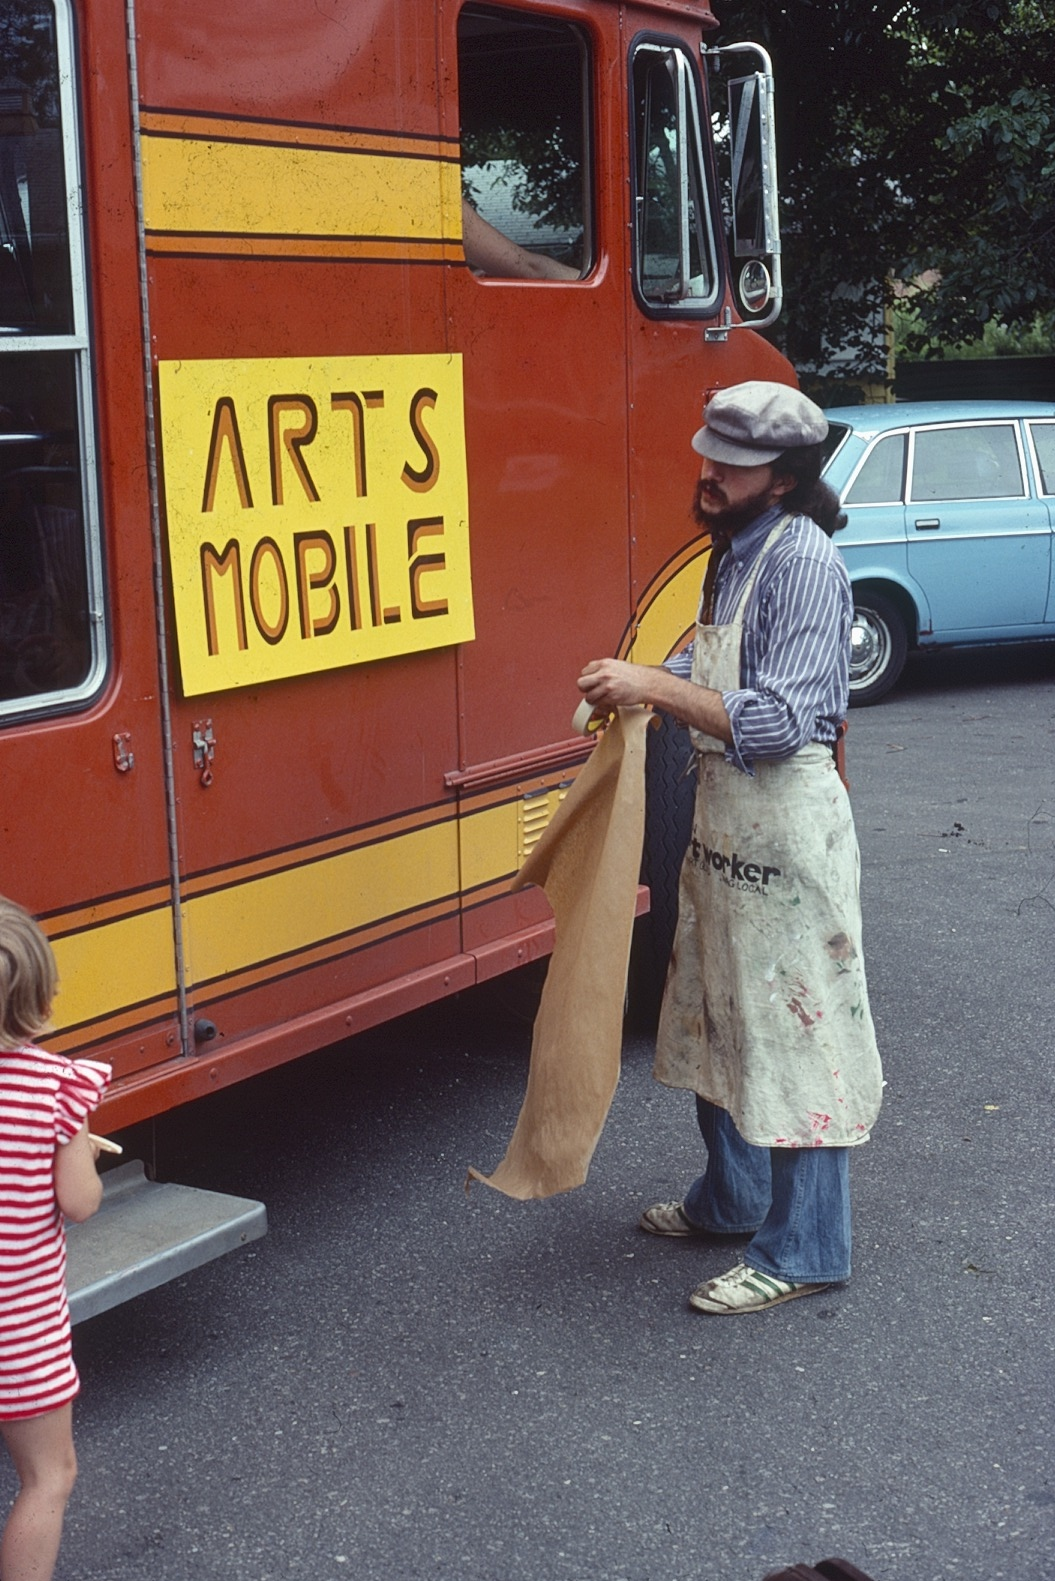 Arts Mobile and Artist